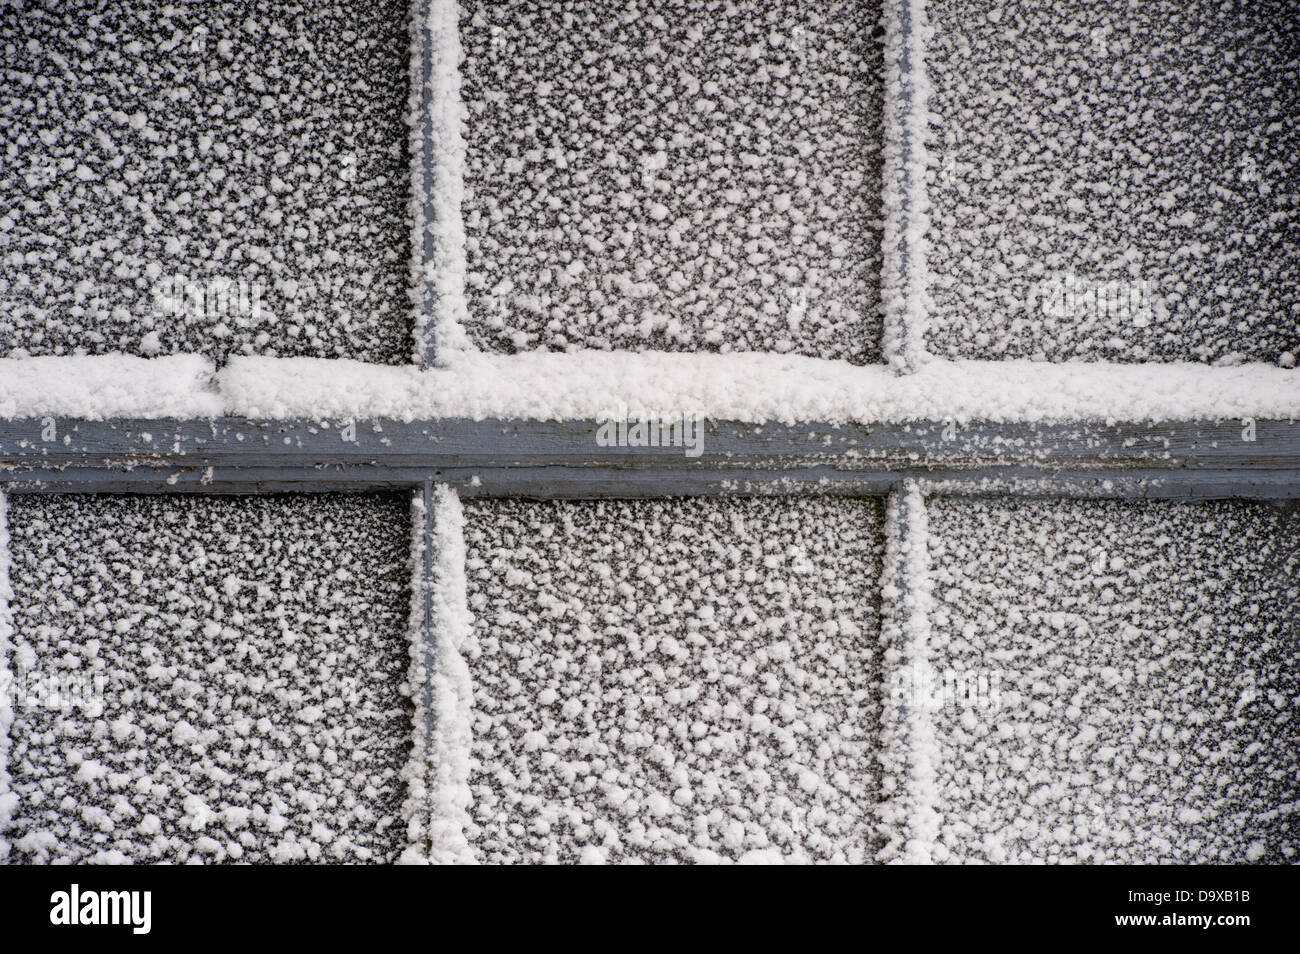 Snow on a barn window pane. - Stock Image